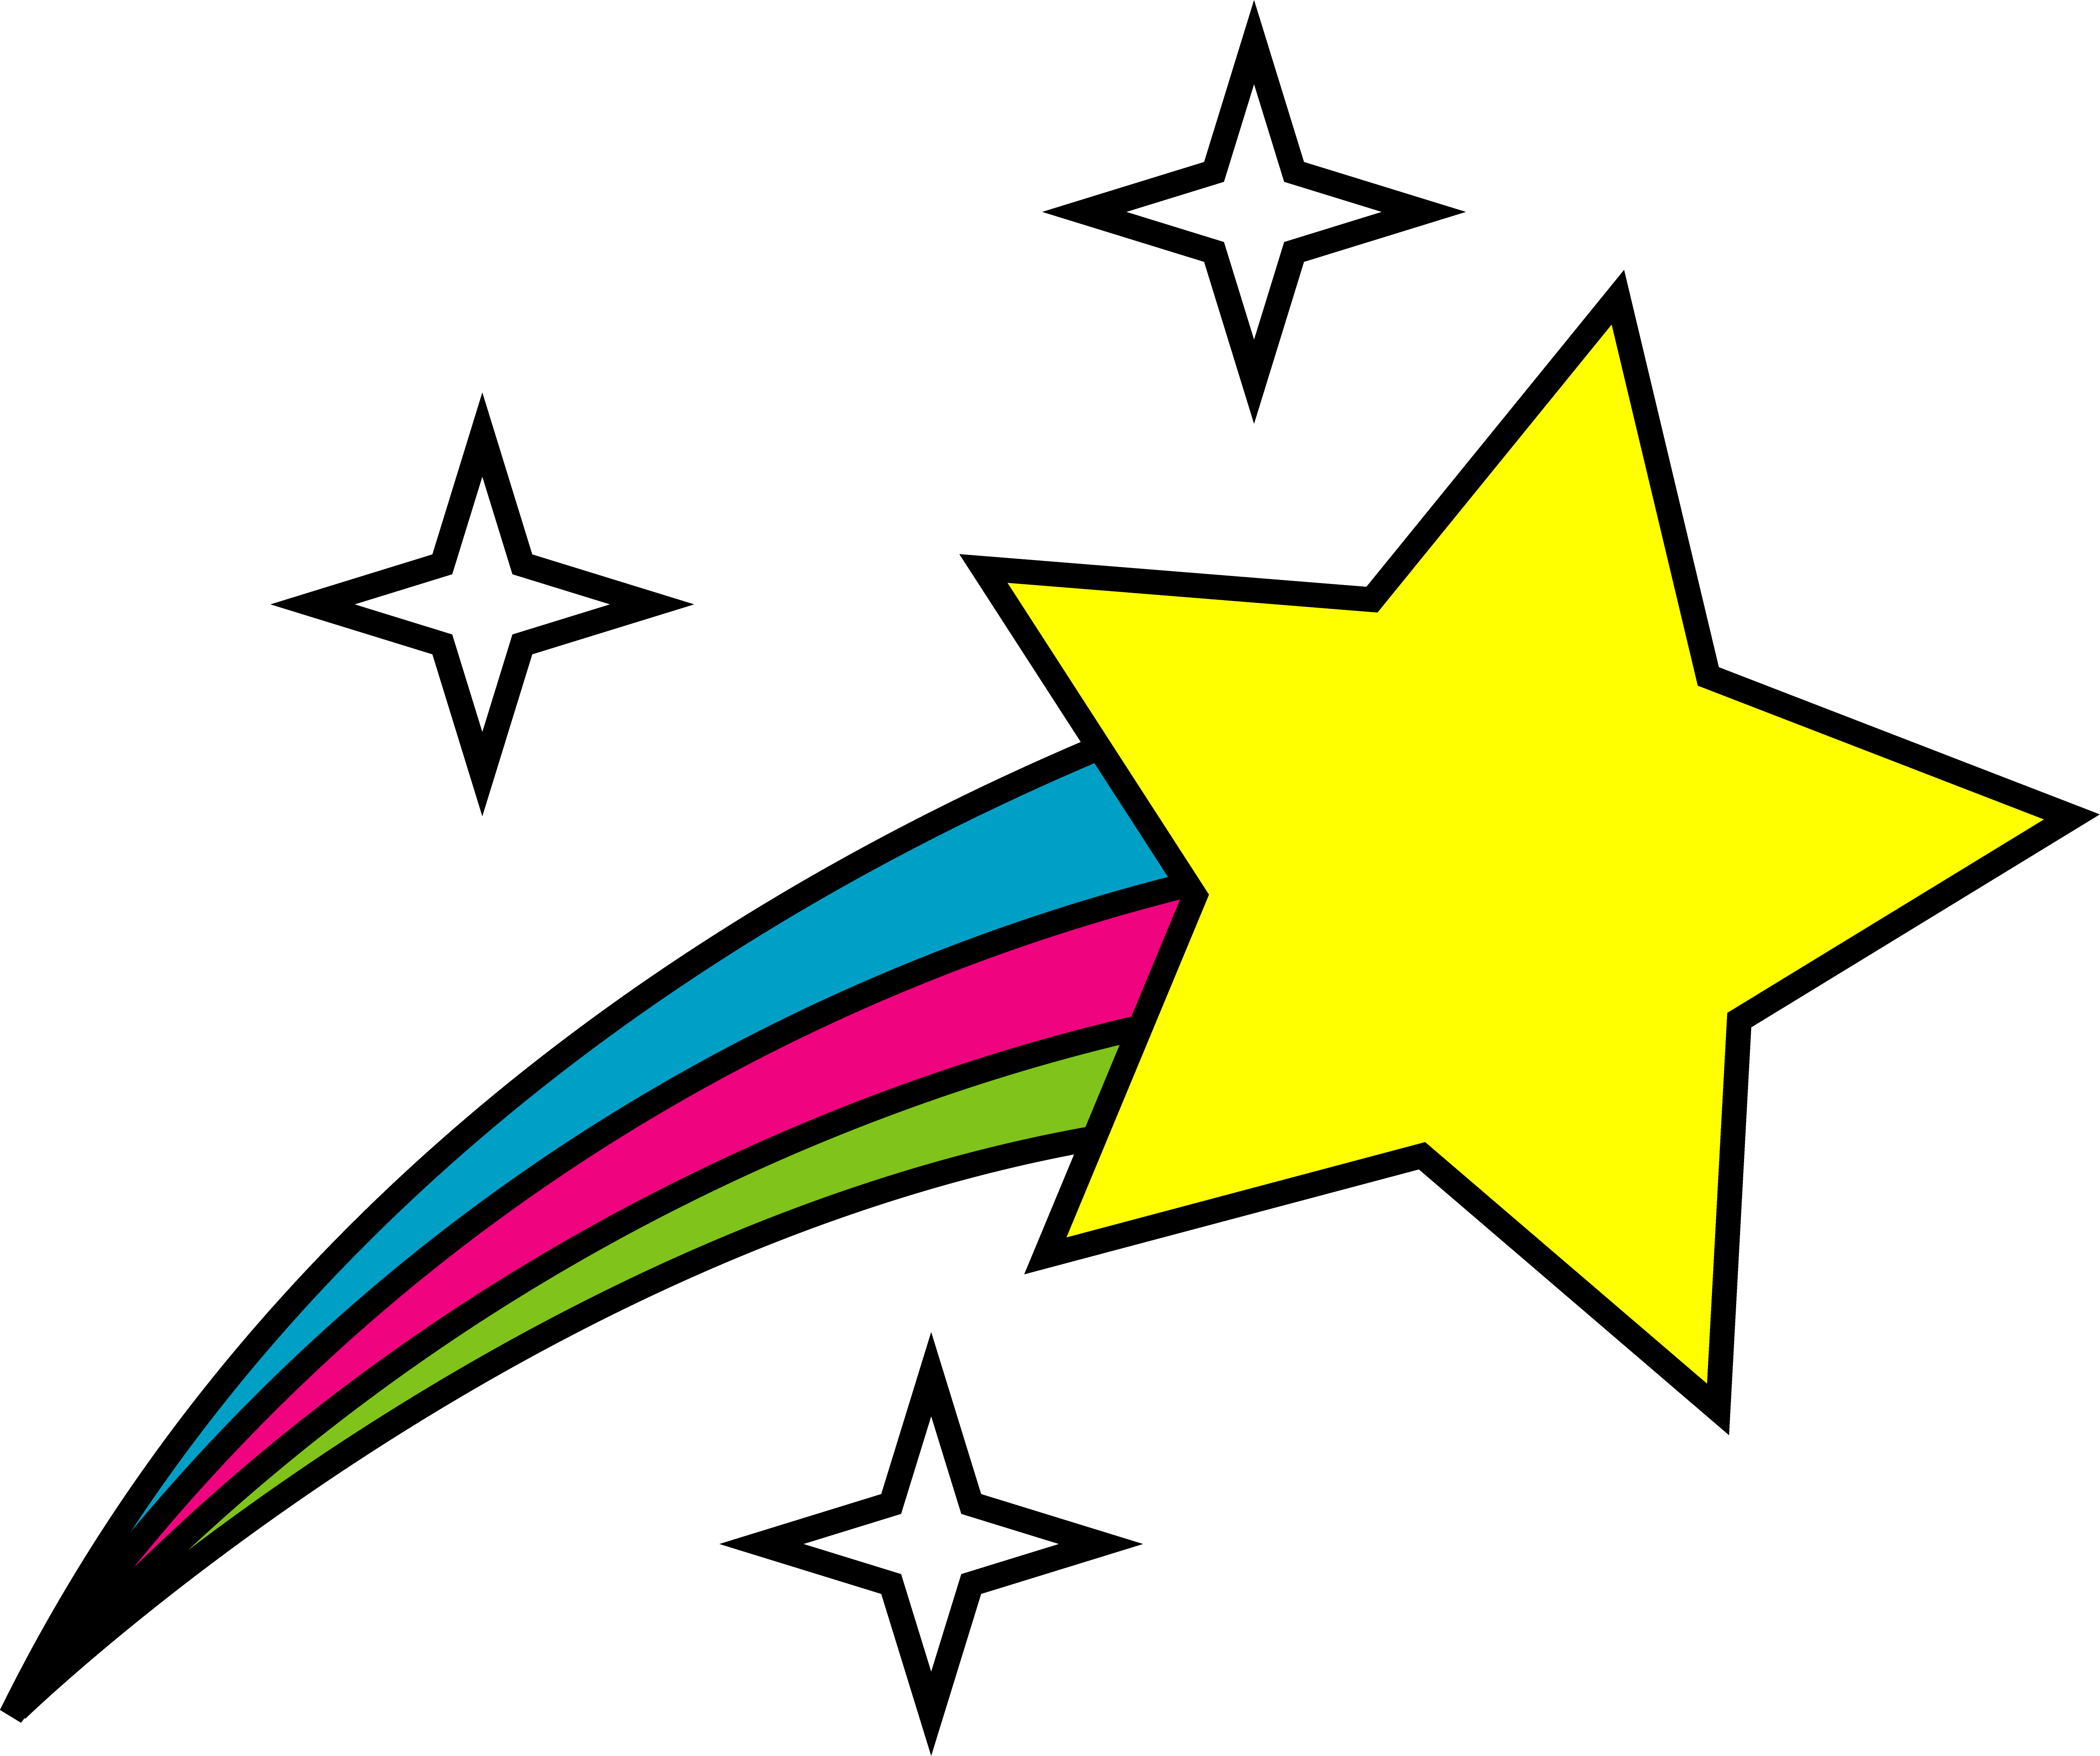 Stars clipart #3, Download drawings